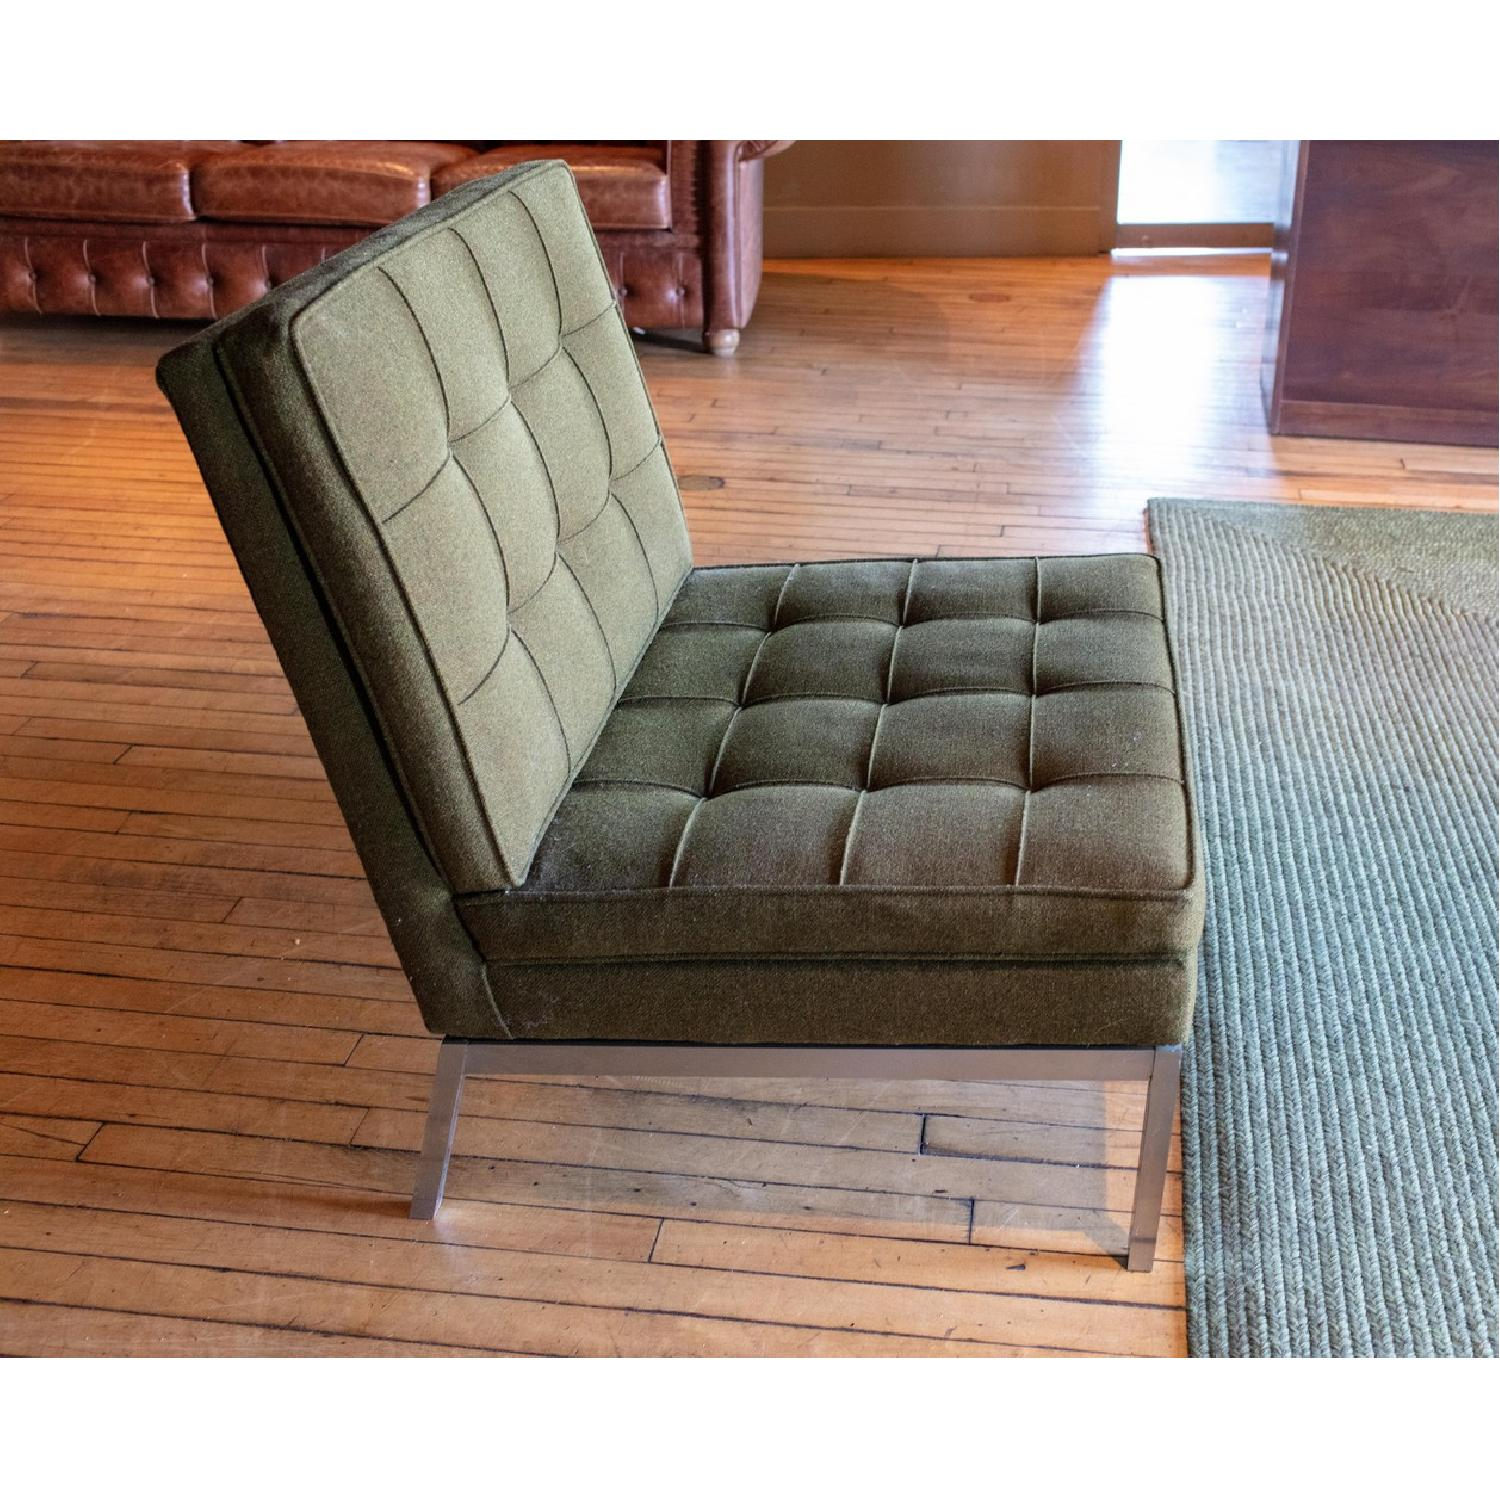 Vintage Florence Knoll Chair - image-4